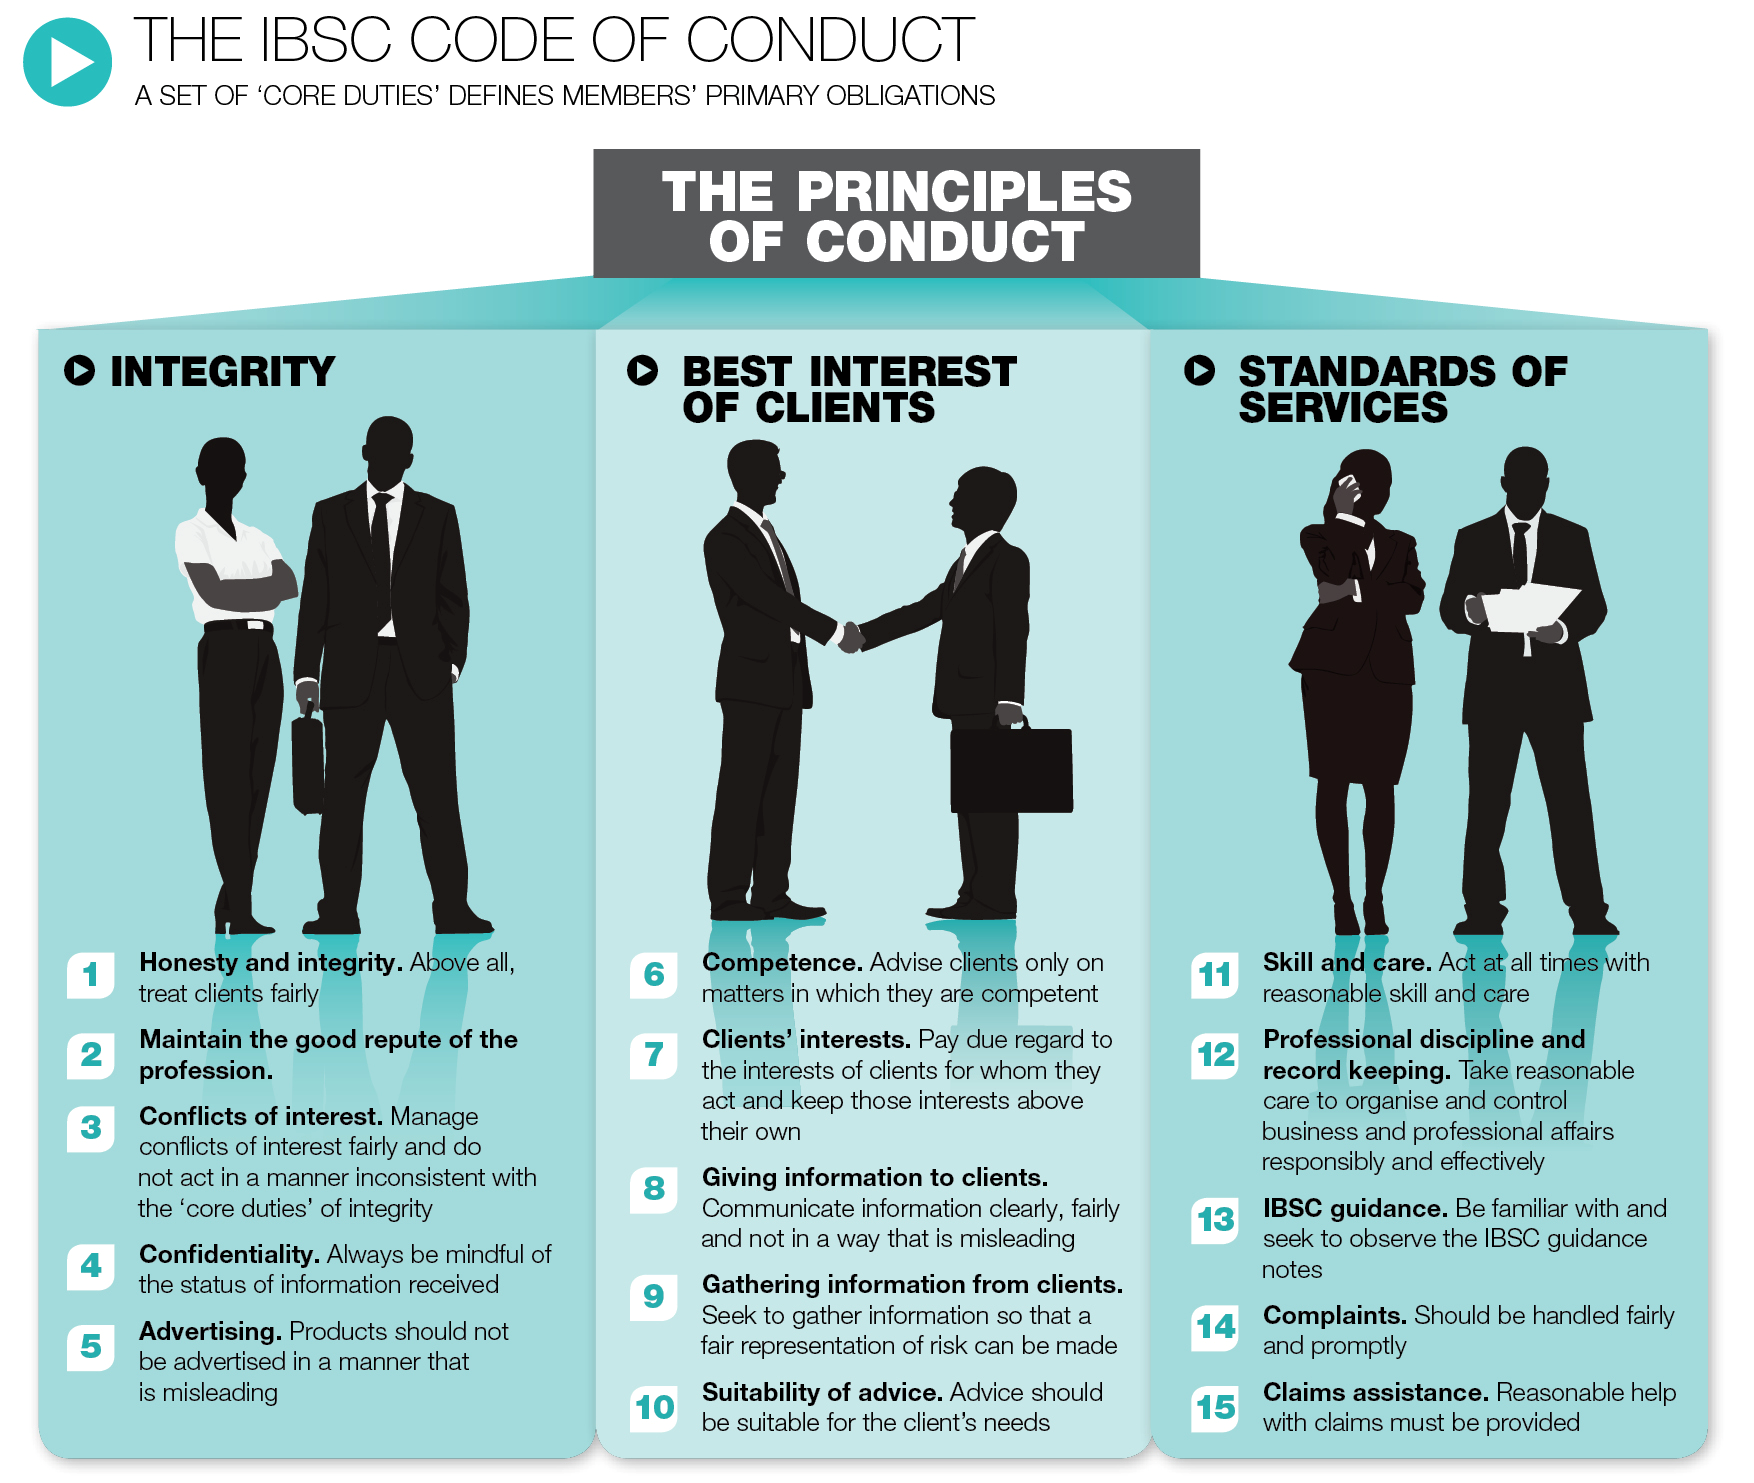 Ethics Professional Responsibility: Do Brokers Need A Code Of Conduct?